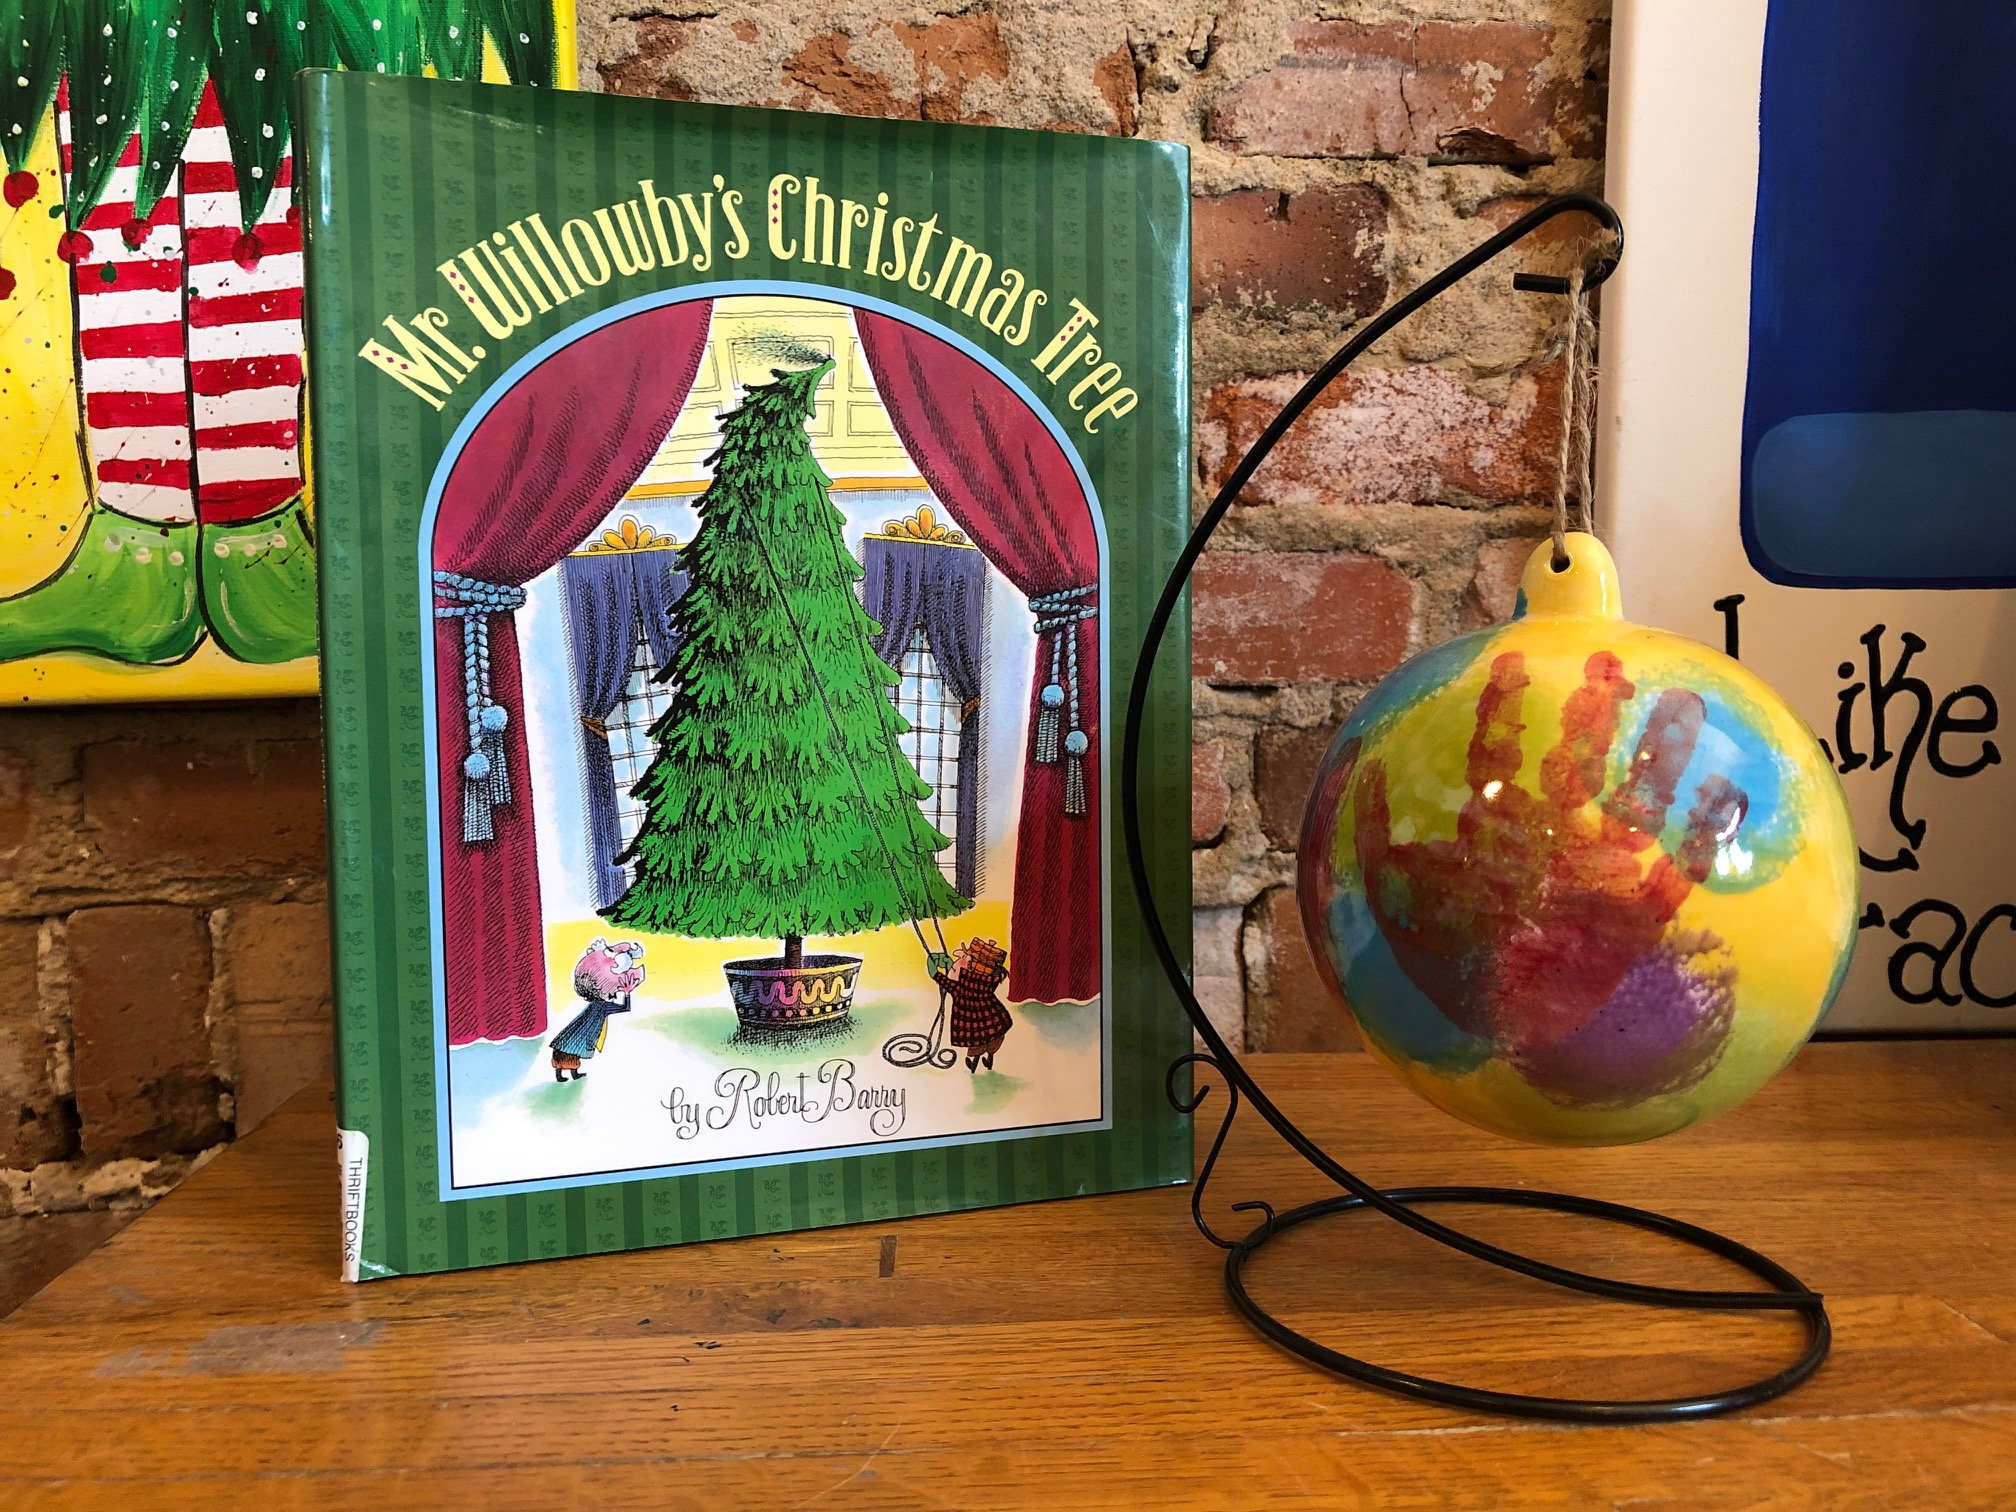 Toddler Christmas Tree.Sat Dec 7th 10am Or 11am Toddler Tales Mr Willowby S Christmas Tree